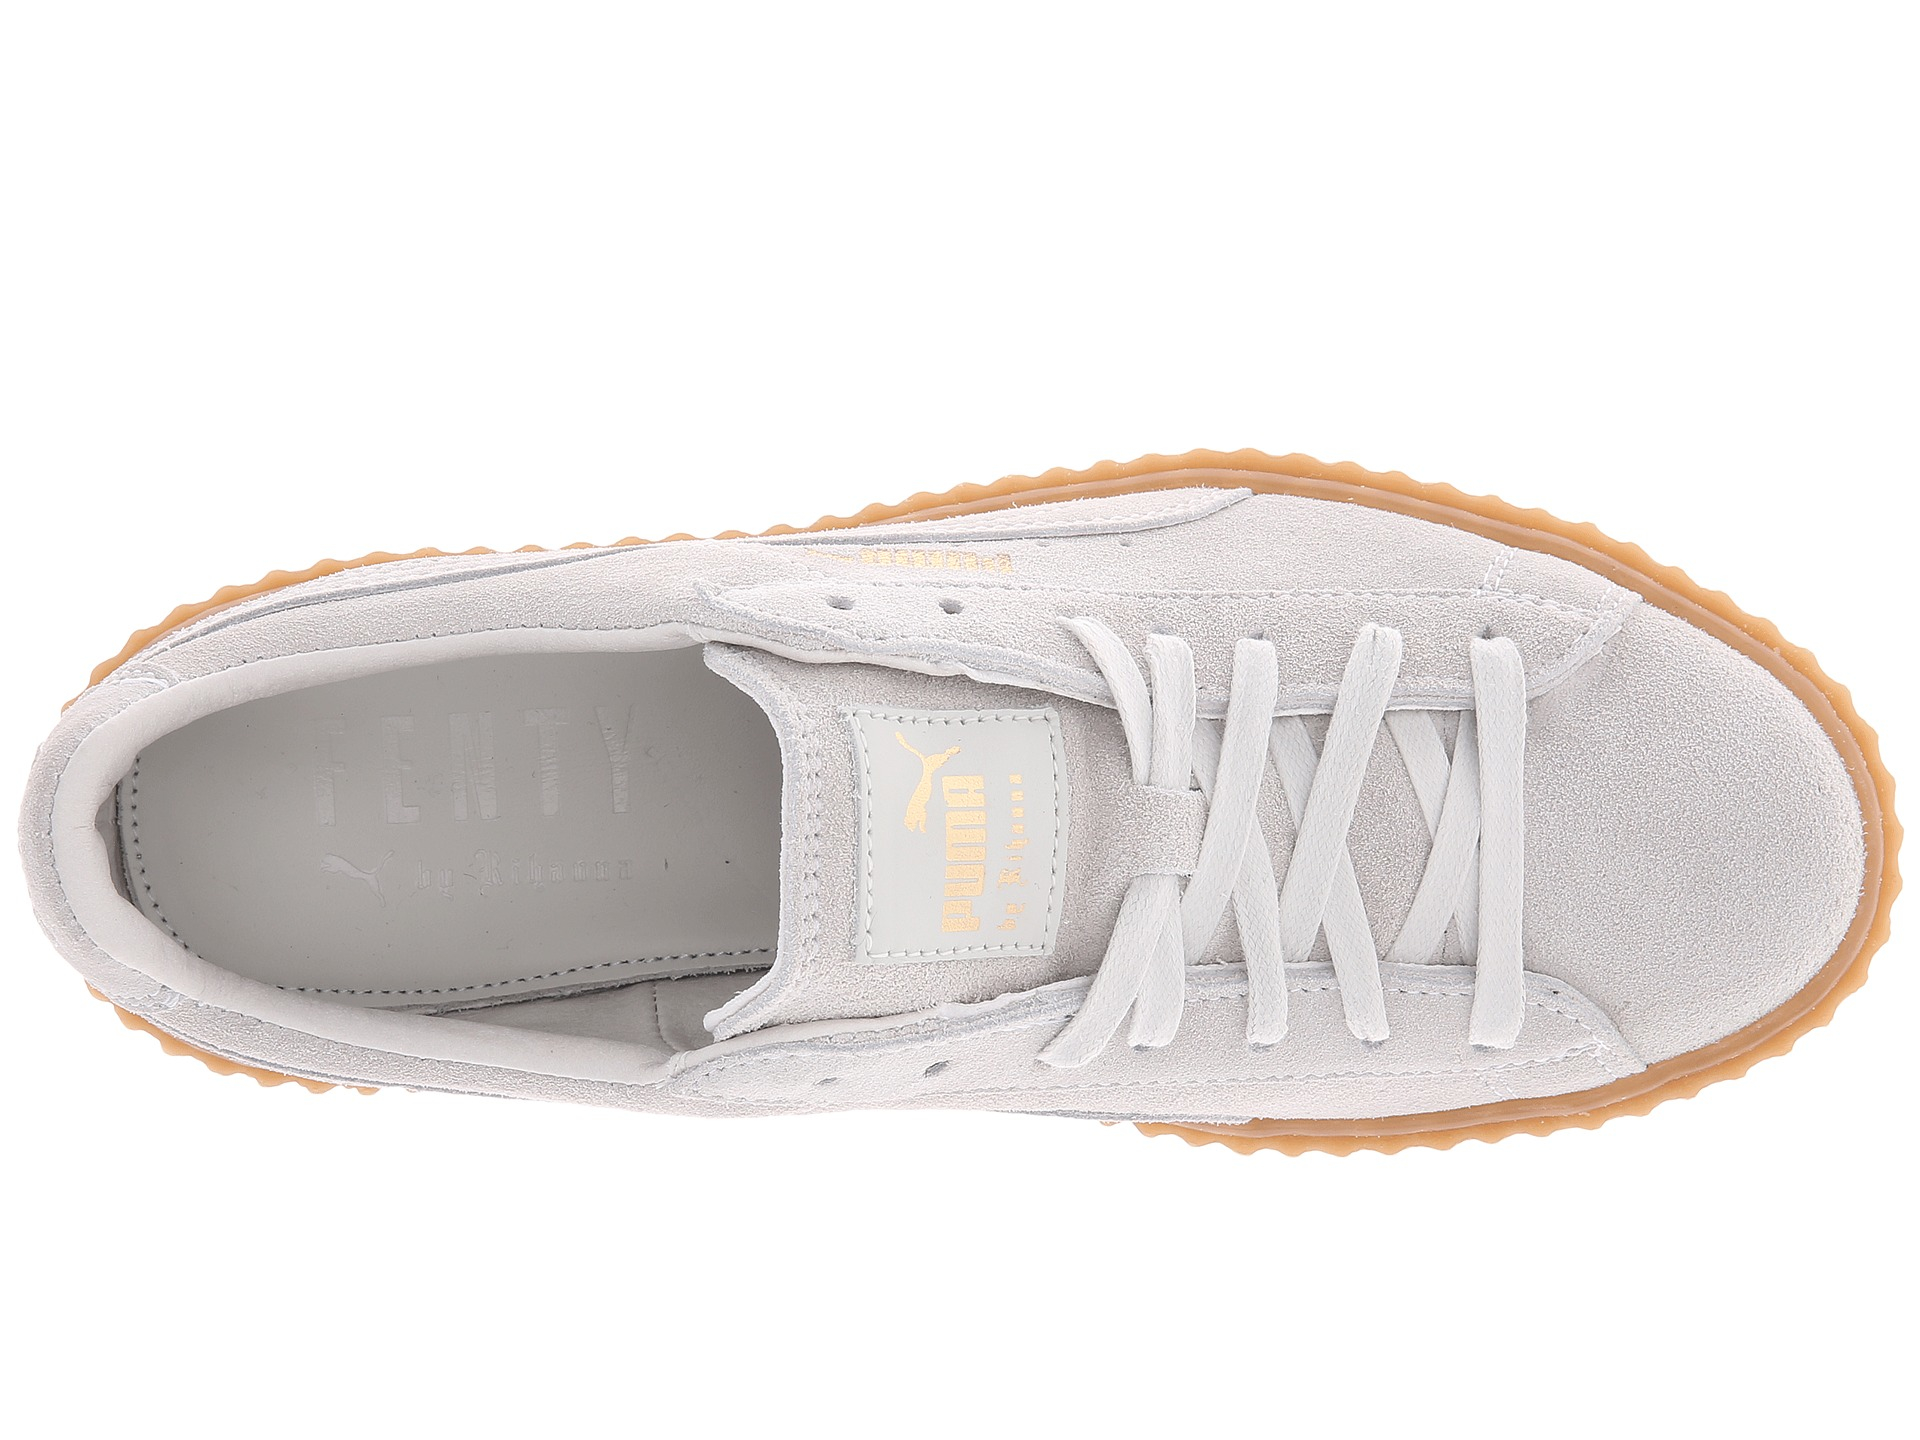 puma shoes suede creepers star white star white oatmeal